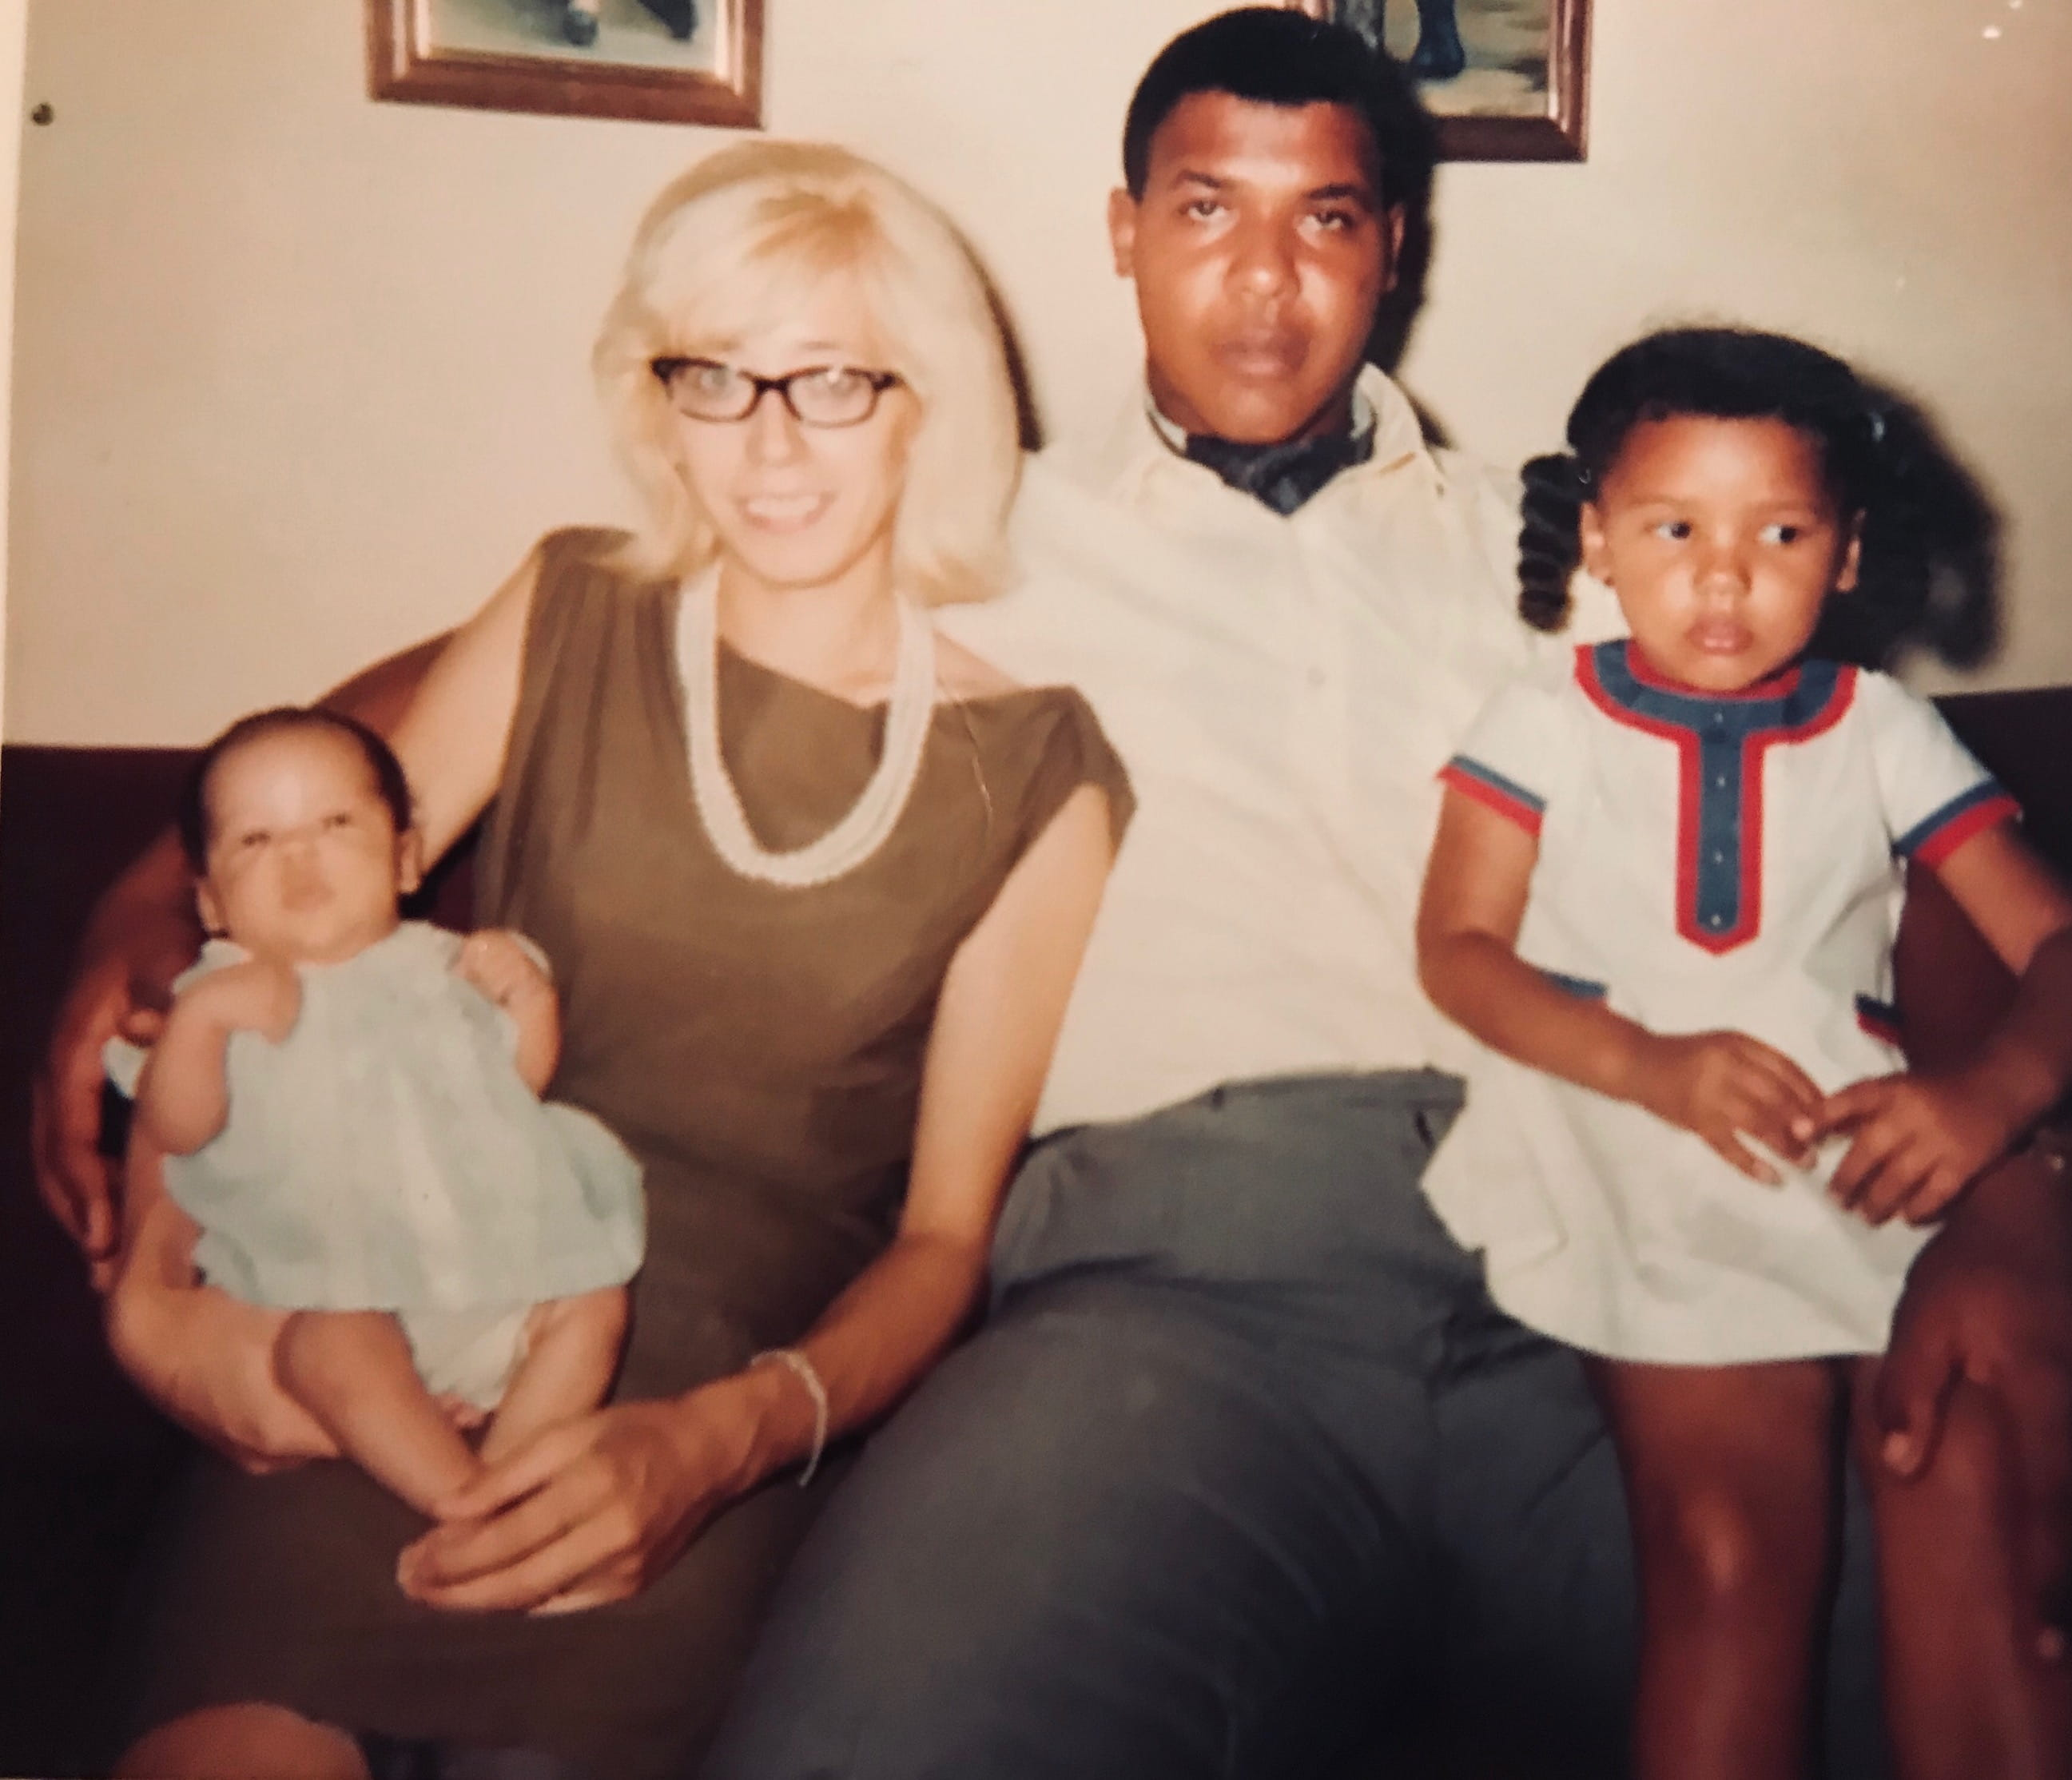 old photo of family sitting on couch. there is a mom and dad and on either end is a baby and an toddler